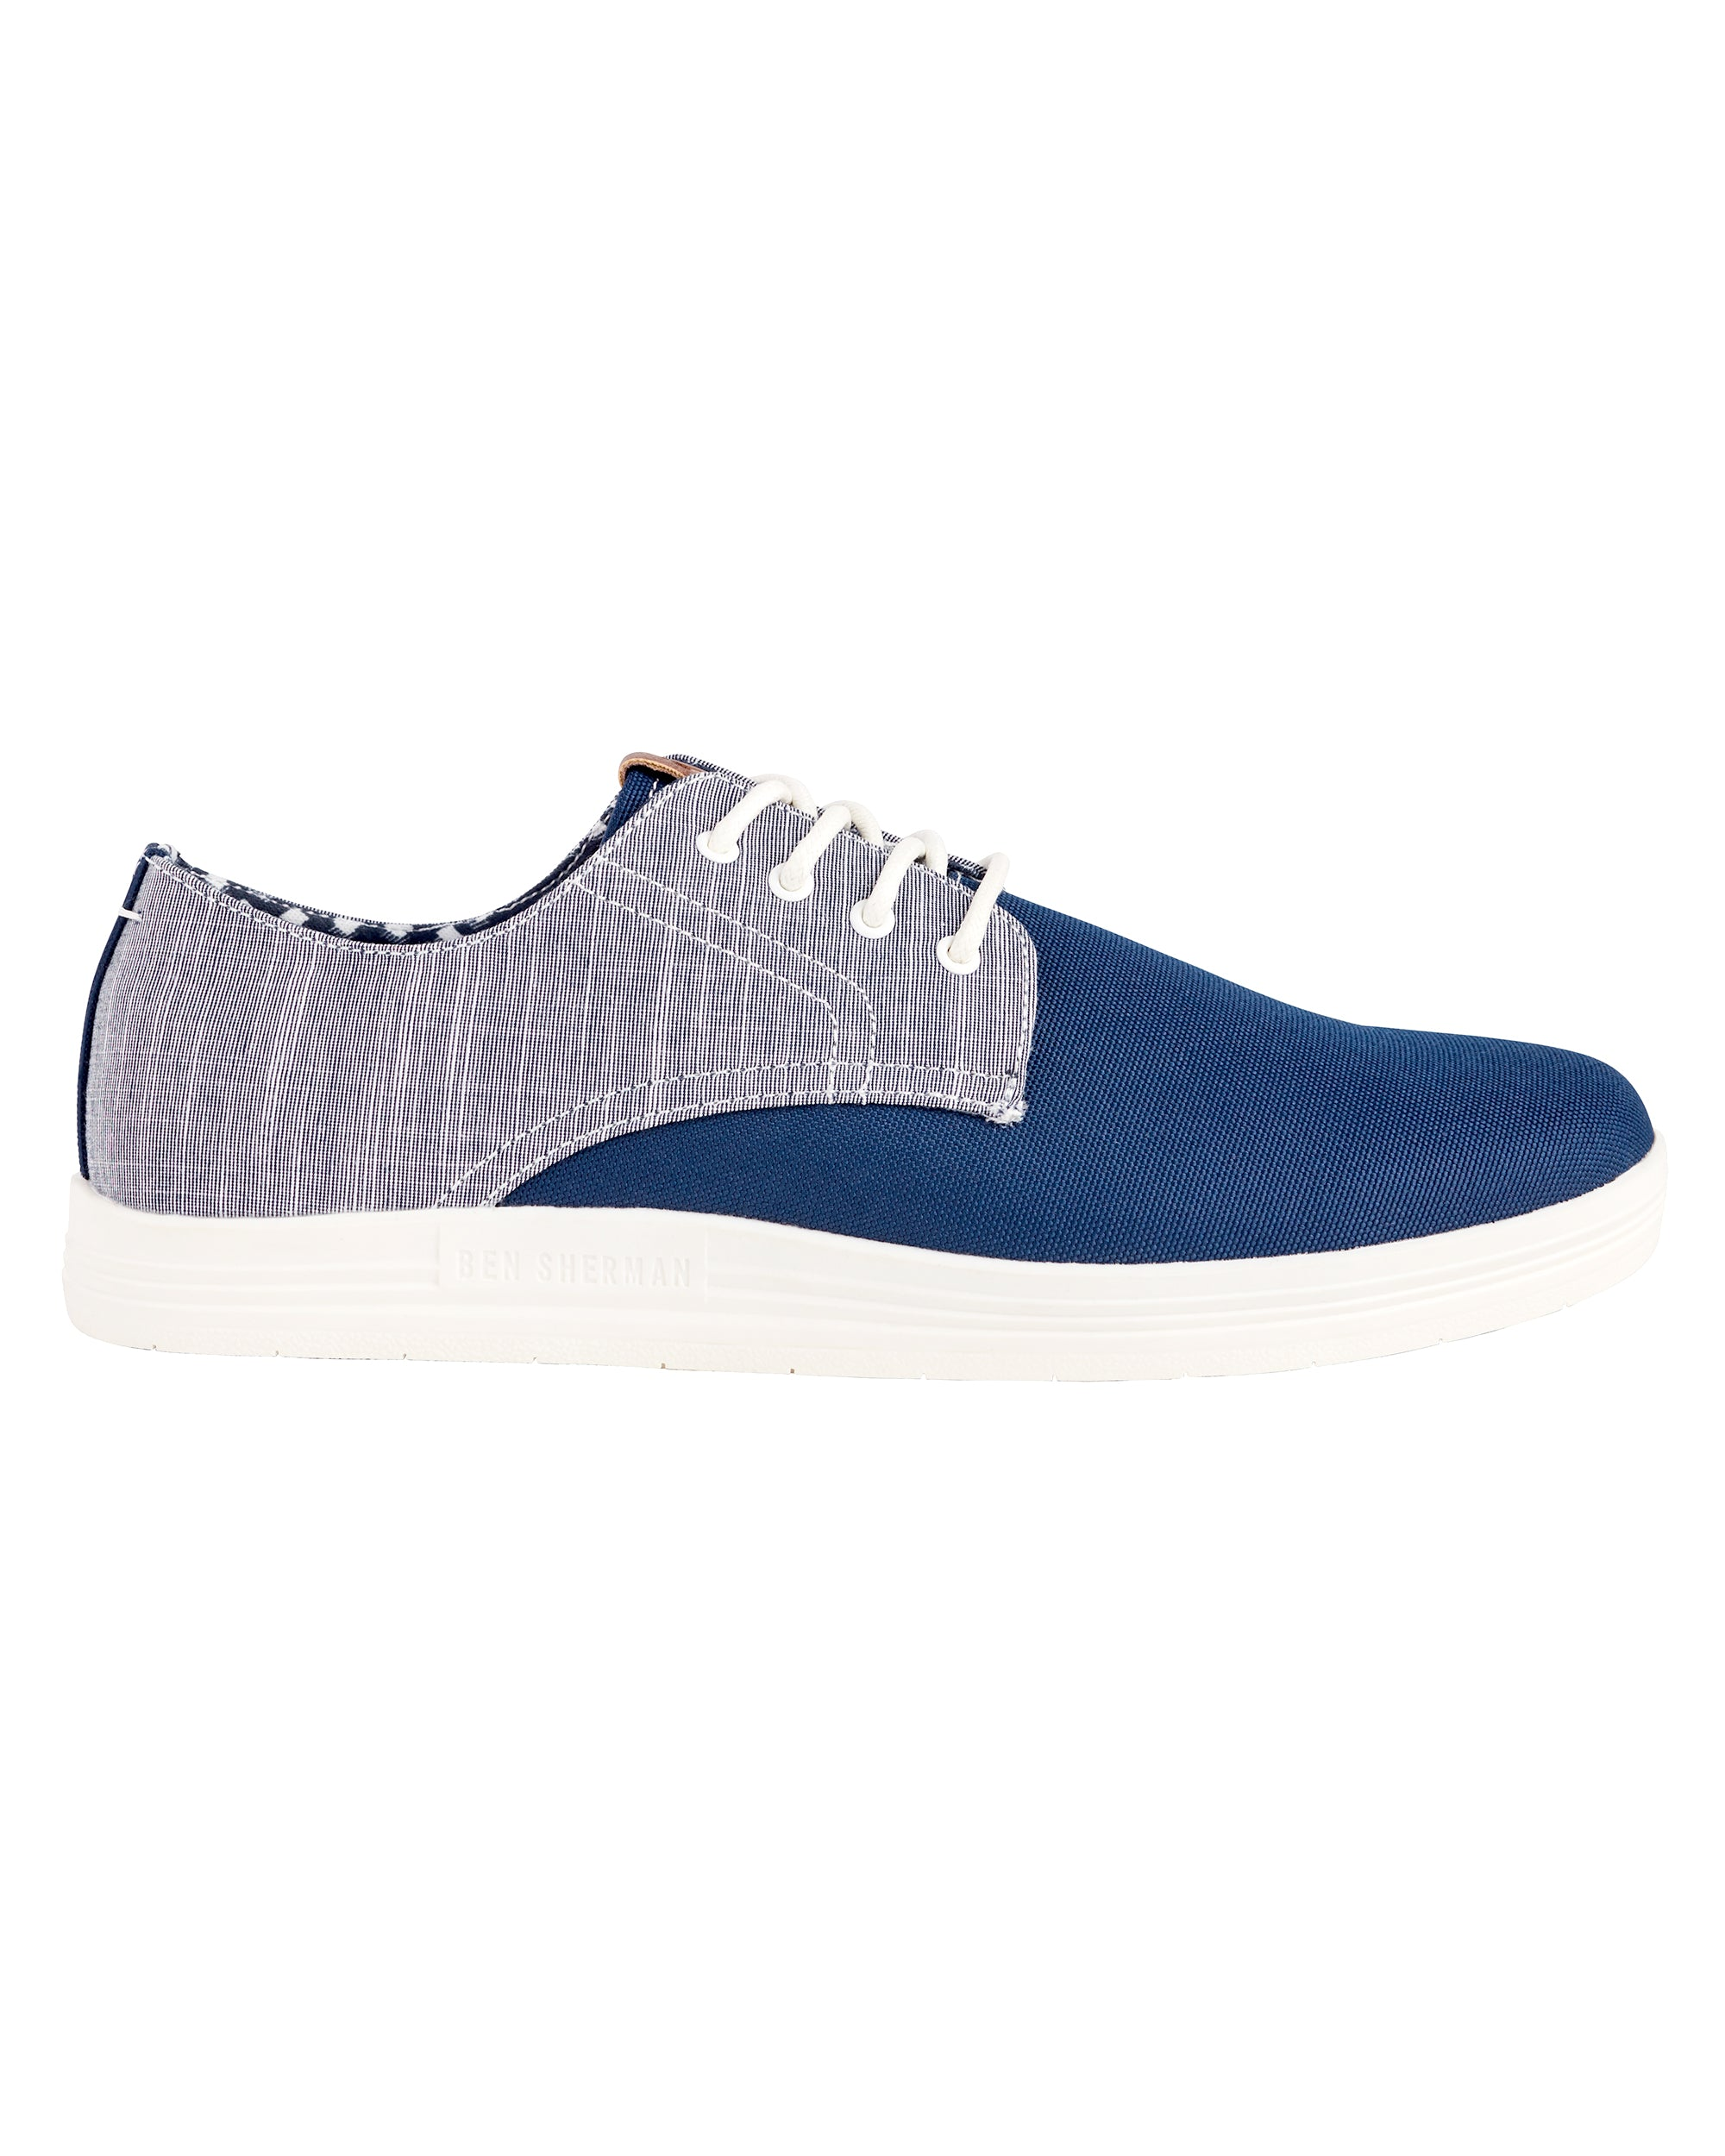 Payton Oxford Lace-Up Sneaker - Navy